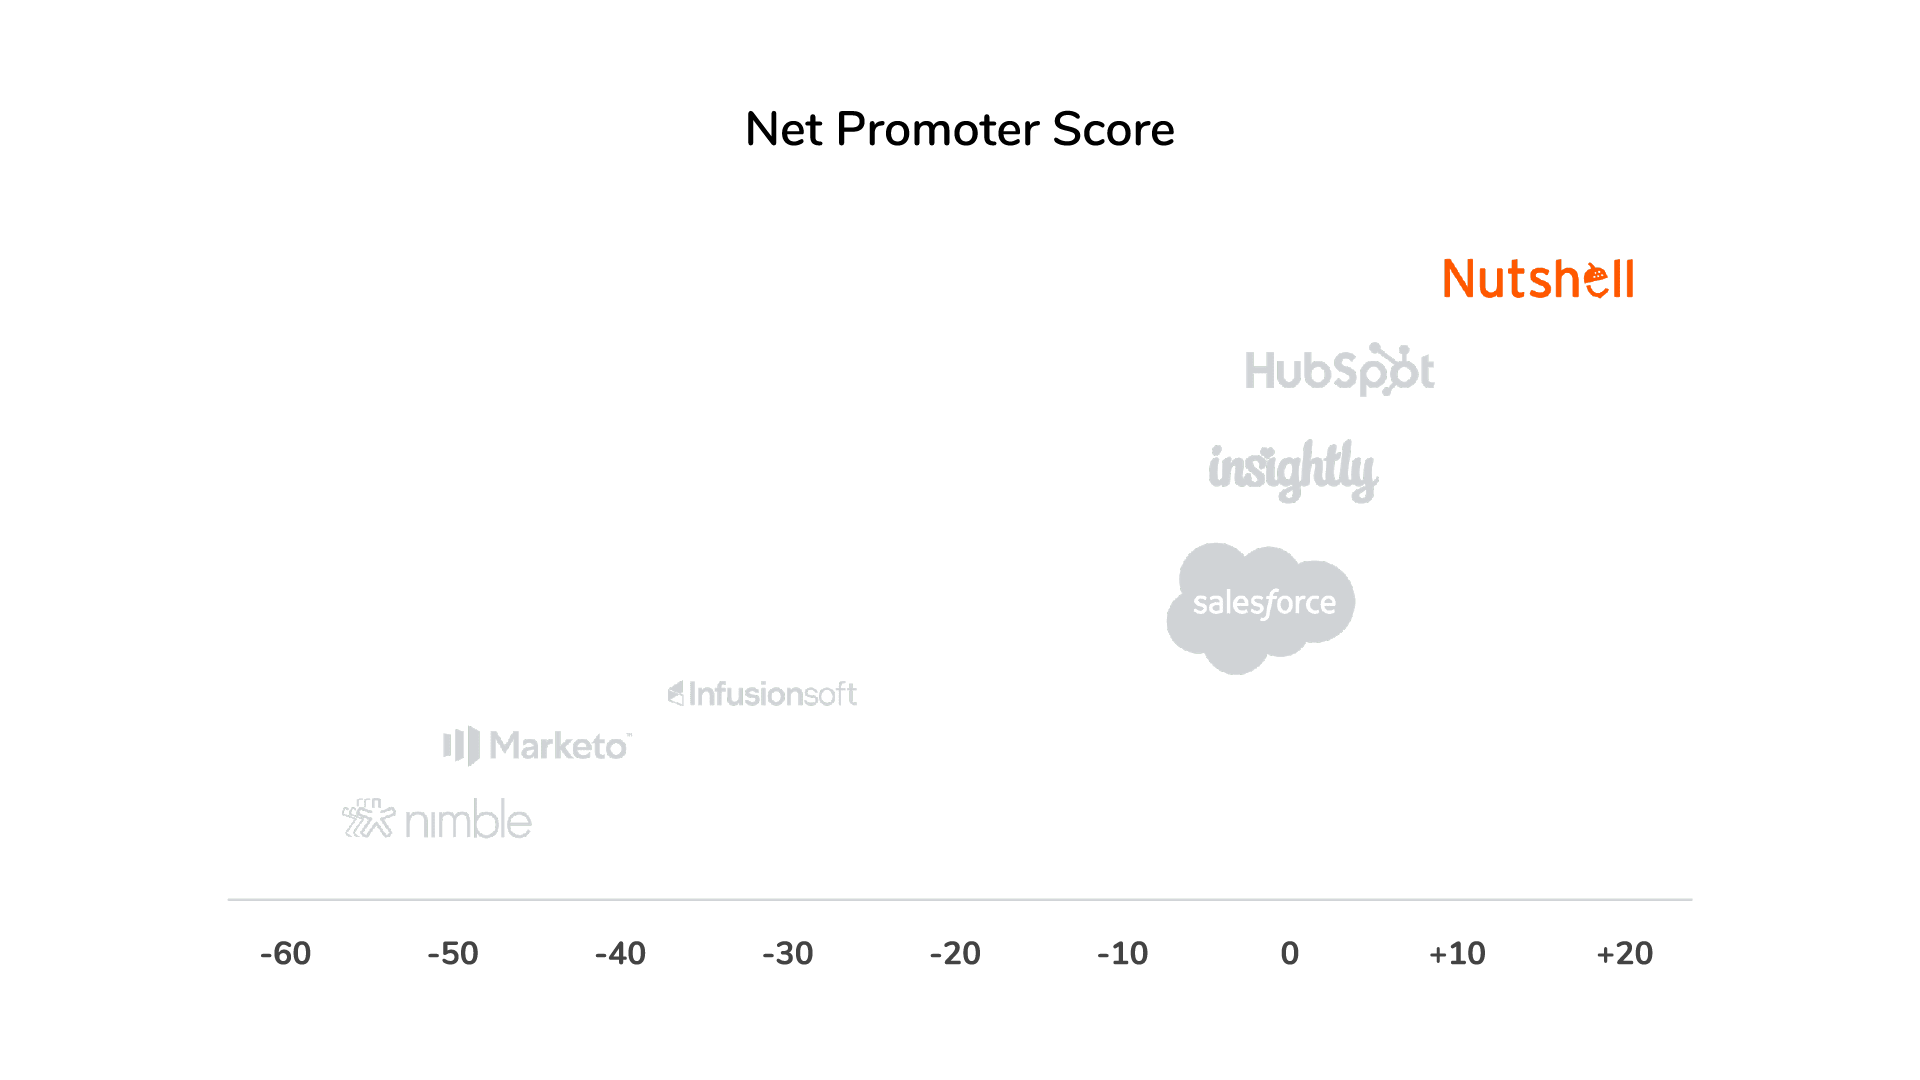 Nutshell NPS vs competitors